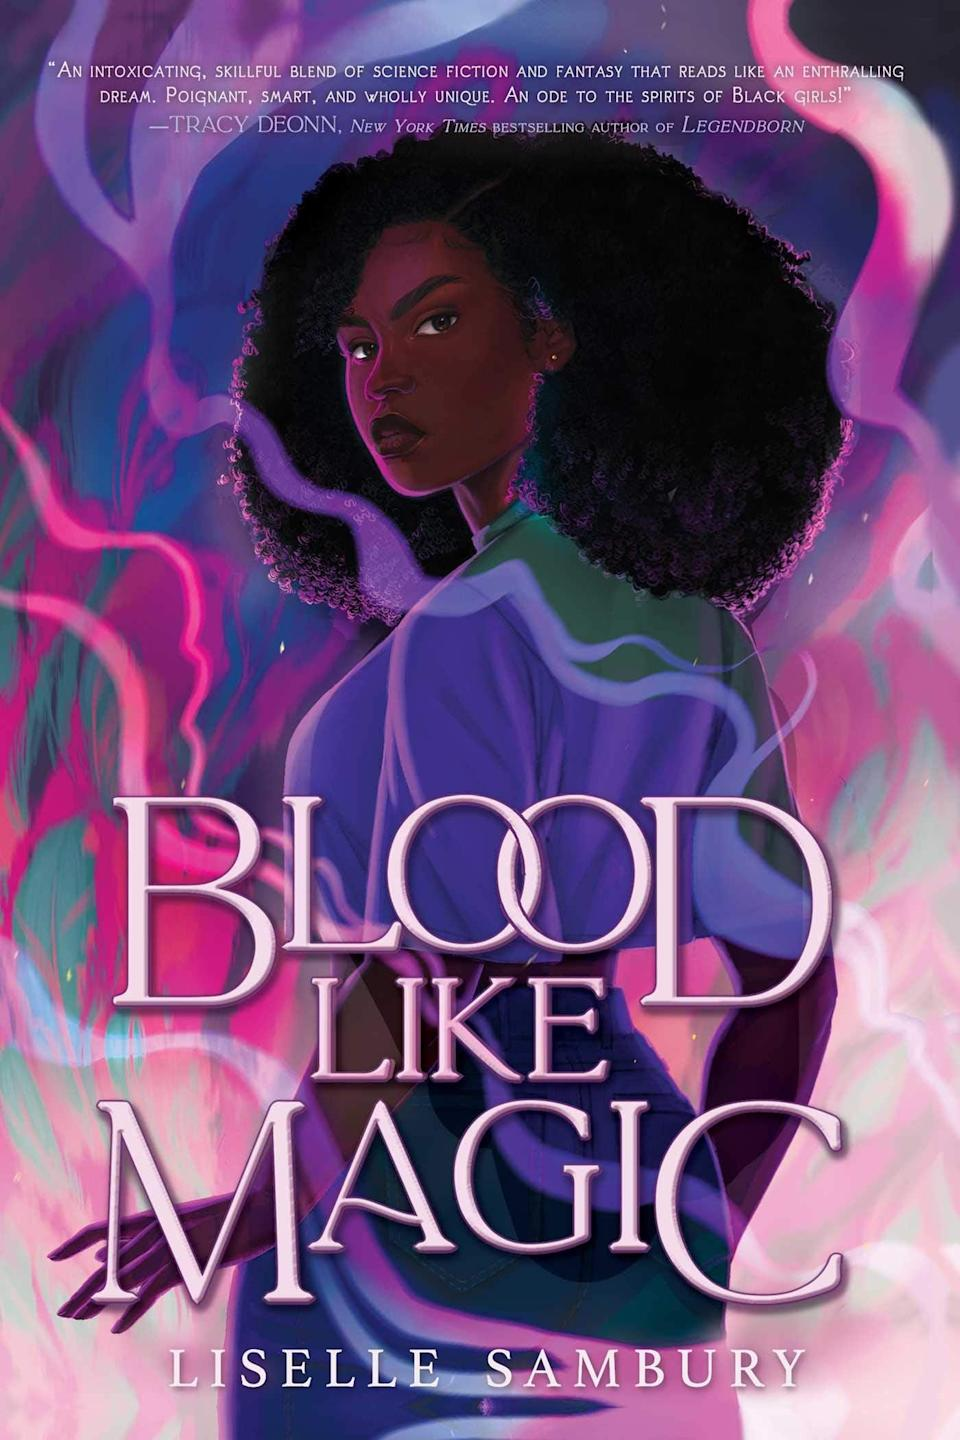 <p>In <span><strong>Blood Like Magic</strong></span> by Liselle Sambury, a modern day witch must make the ultimate sacrifice in order to protect her family's magical bloodline. Voya Thomas only has one more shot of receiving her powers and protecting her family from losing theirs - she has to sacrifice her first love. There's just one problem: Voya has never been in love before. </p> <p><em>Out June 15</em></p>